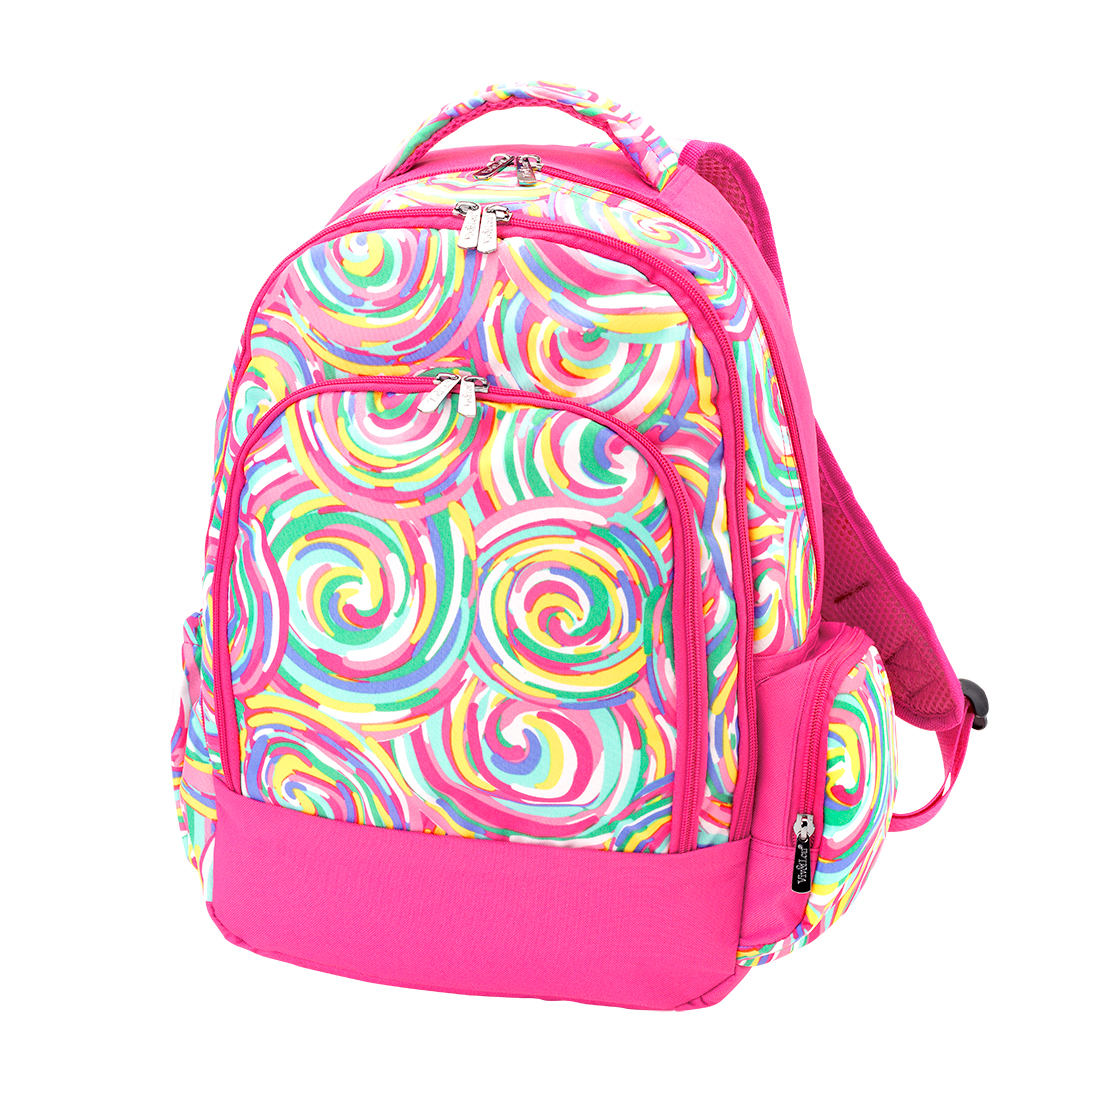 87a50761ae79 Monogrammed Backpack monogrammed bookbags personalized backpacks for girls  ...